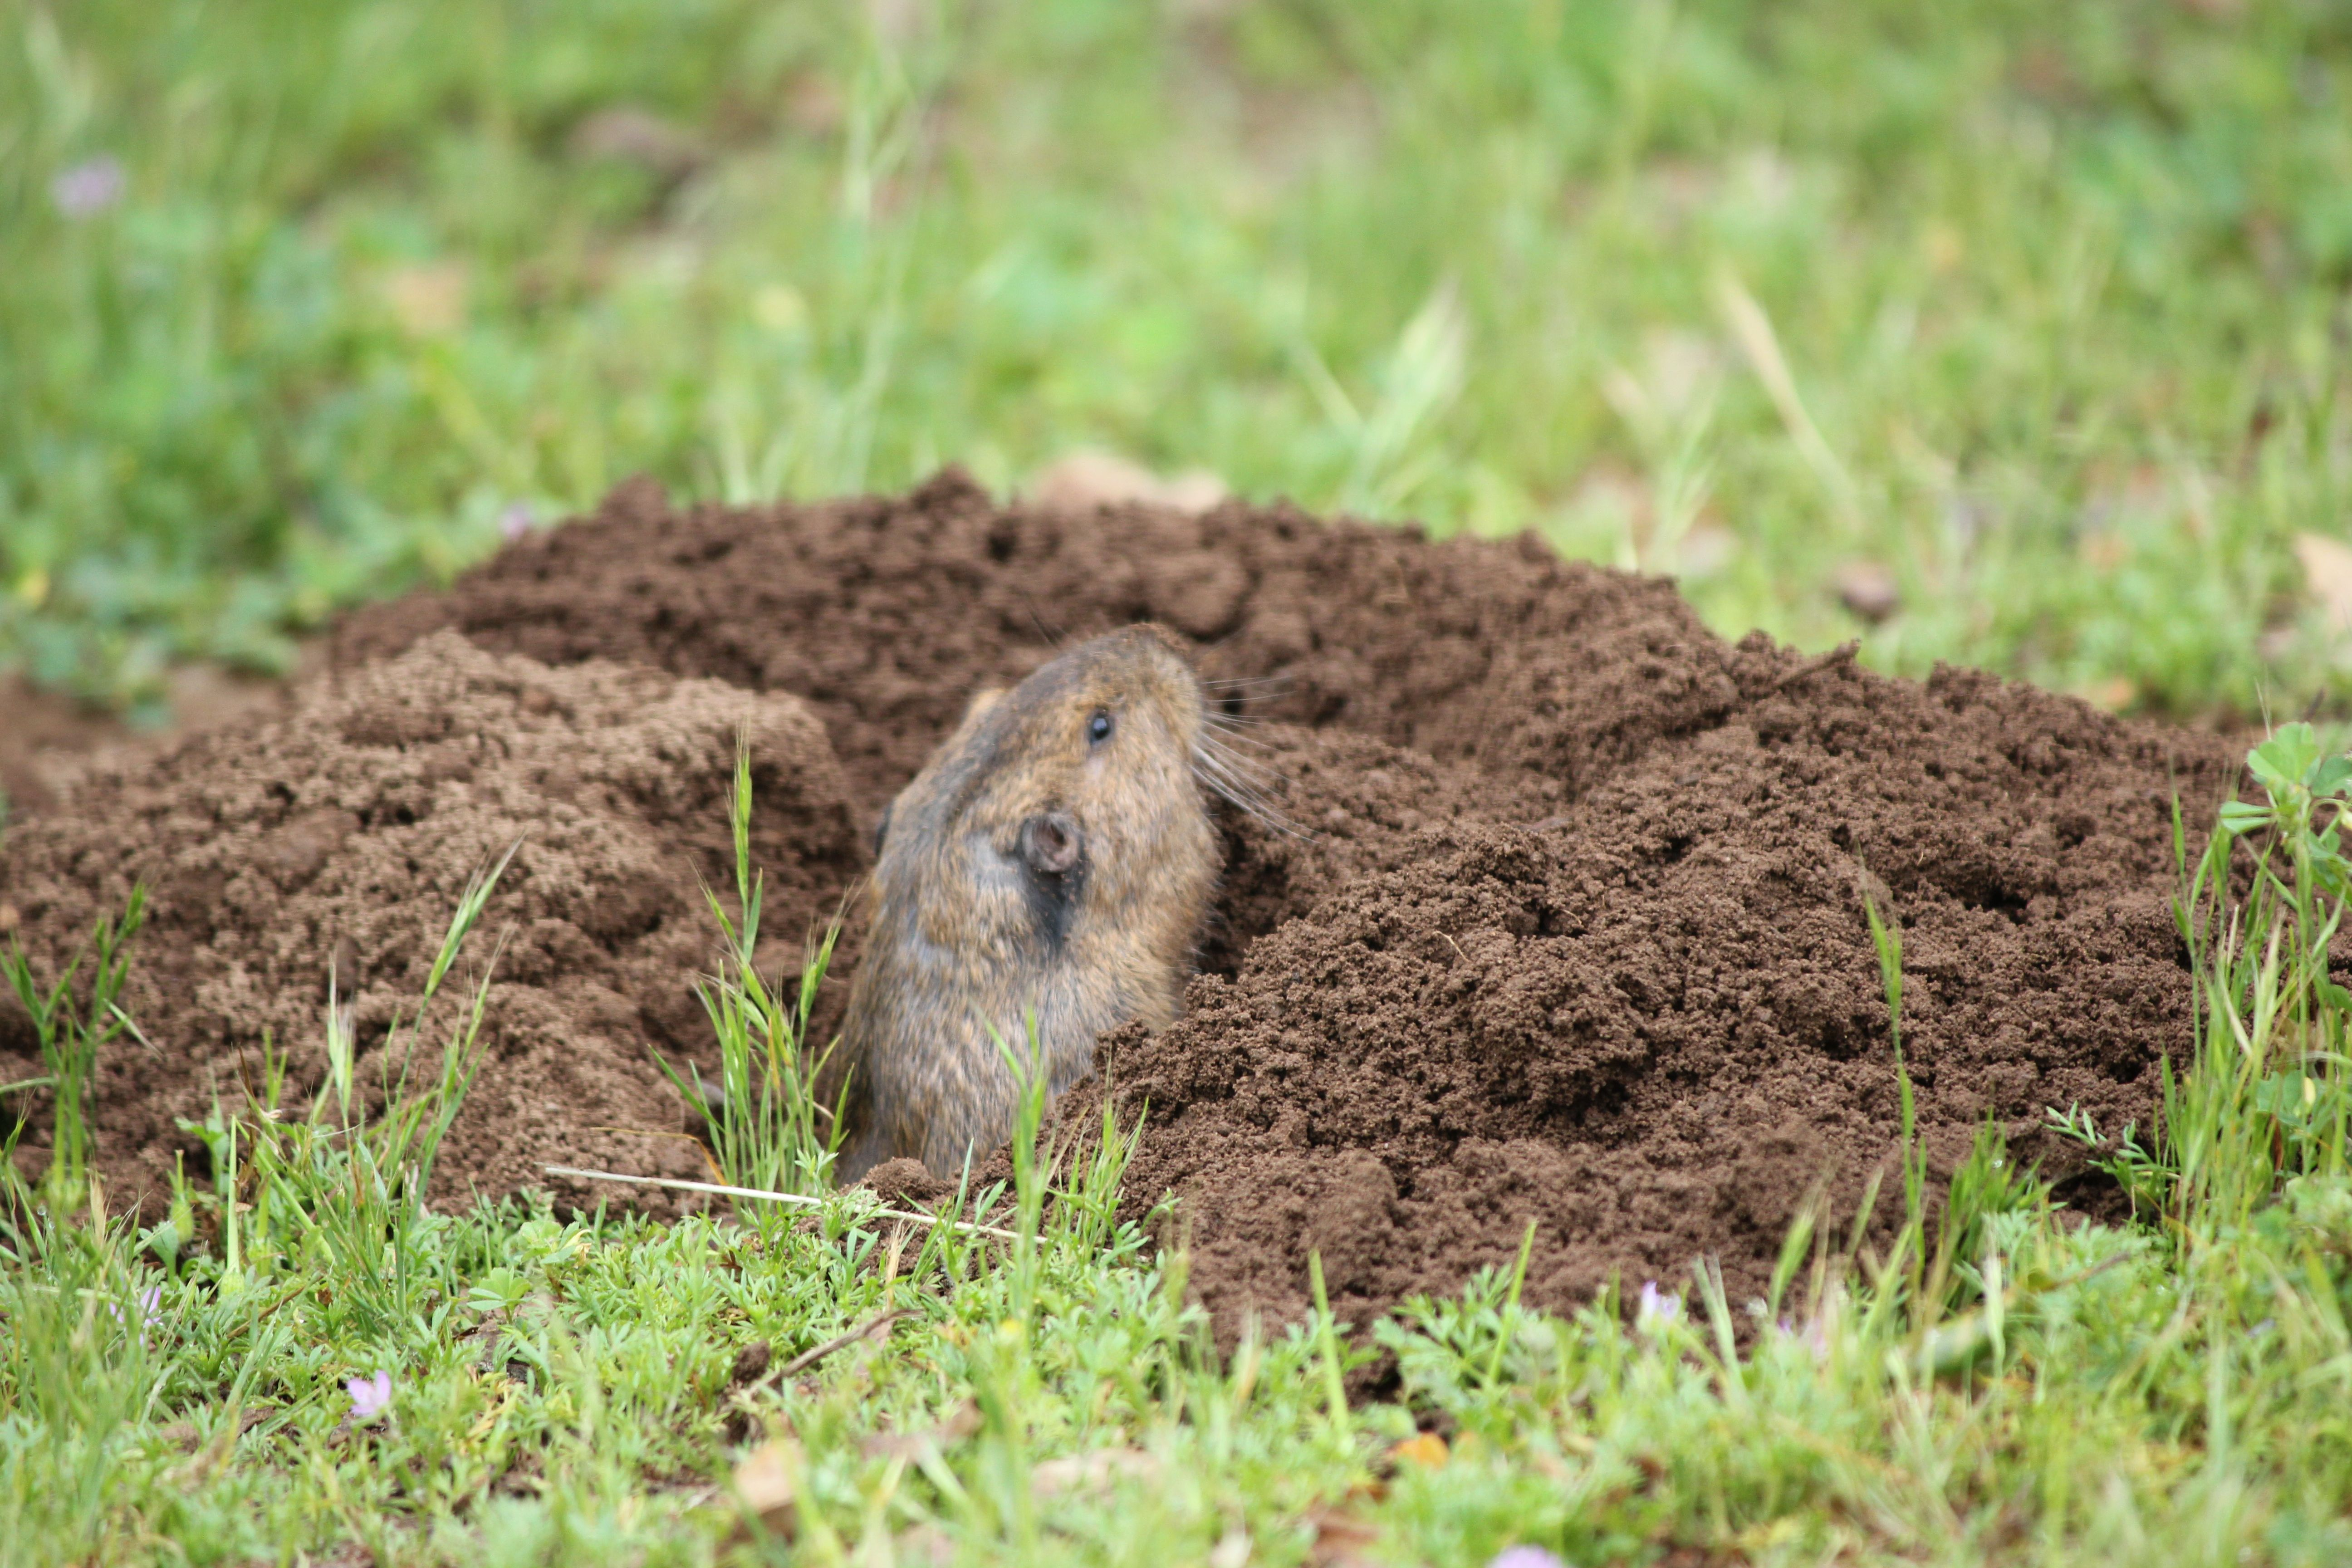 How To Get Rid Of Moles And Gophers In Your Yard Without Chemicals Gardentips Biz Gopher Getting Rid Of Gophers Garden Pest Control